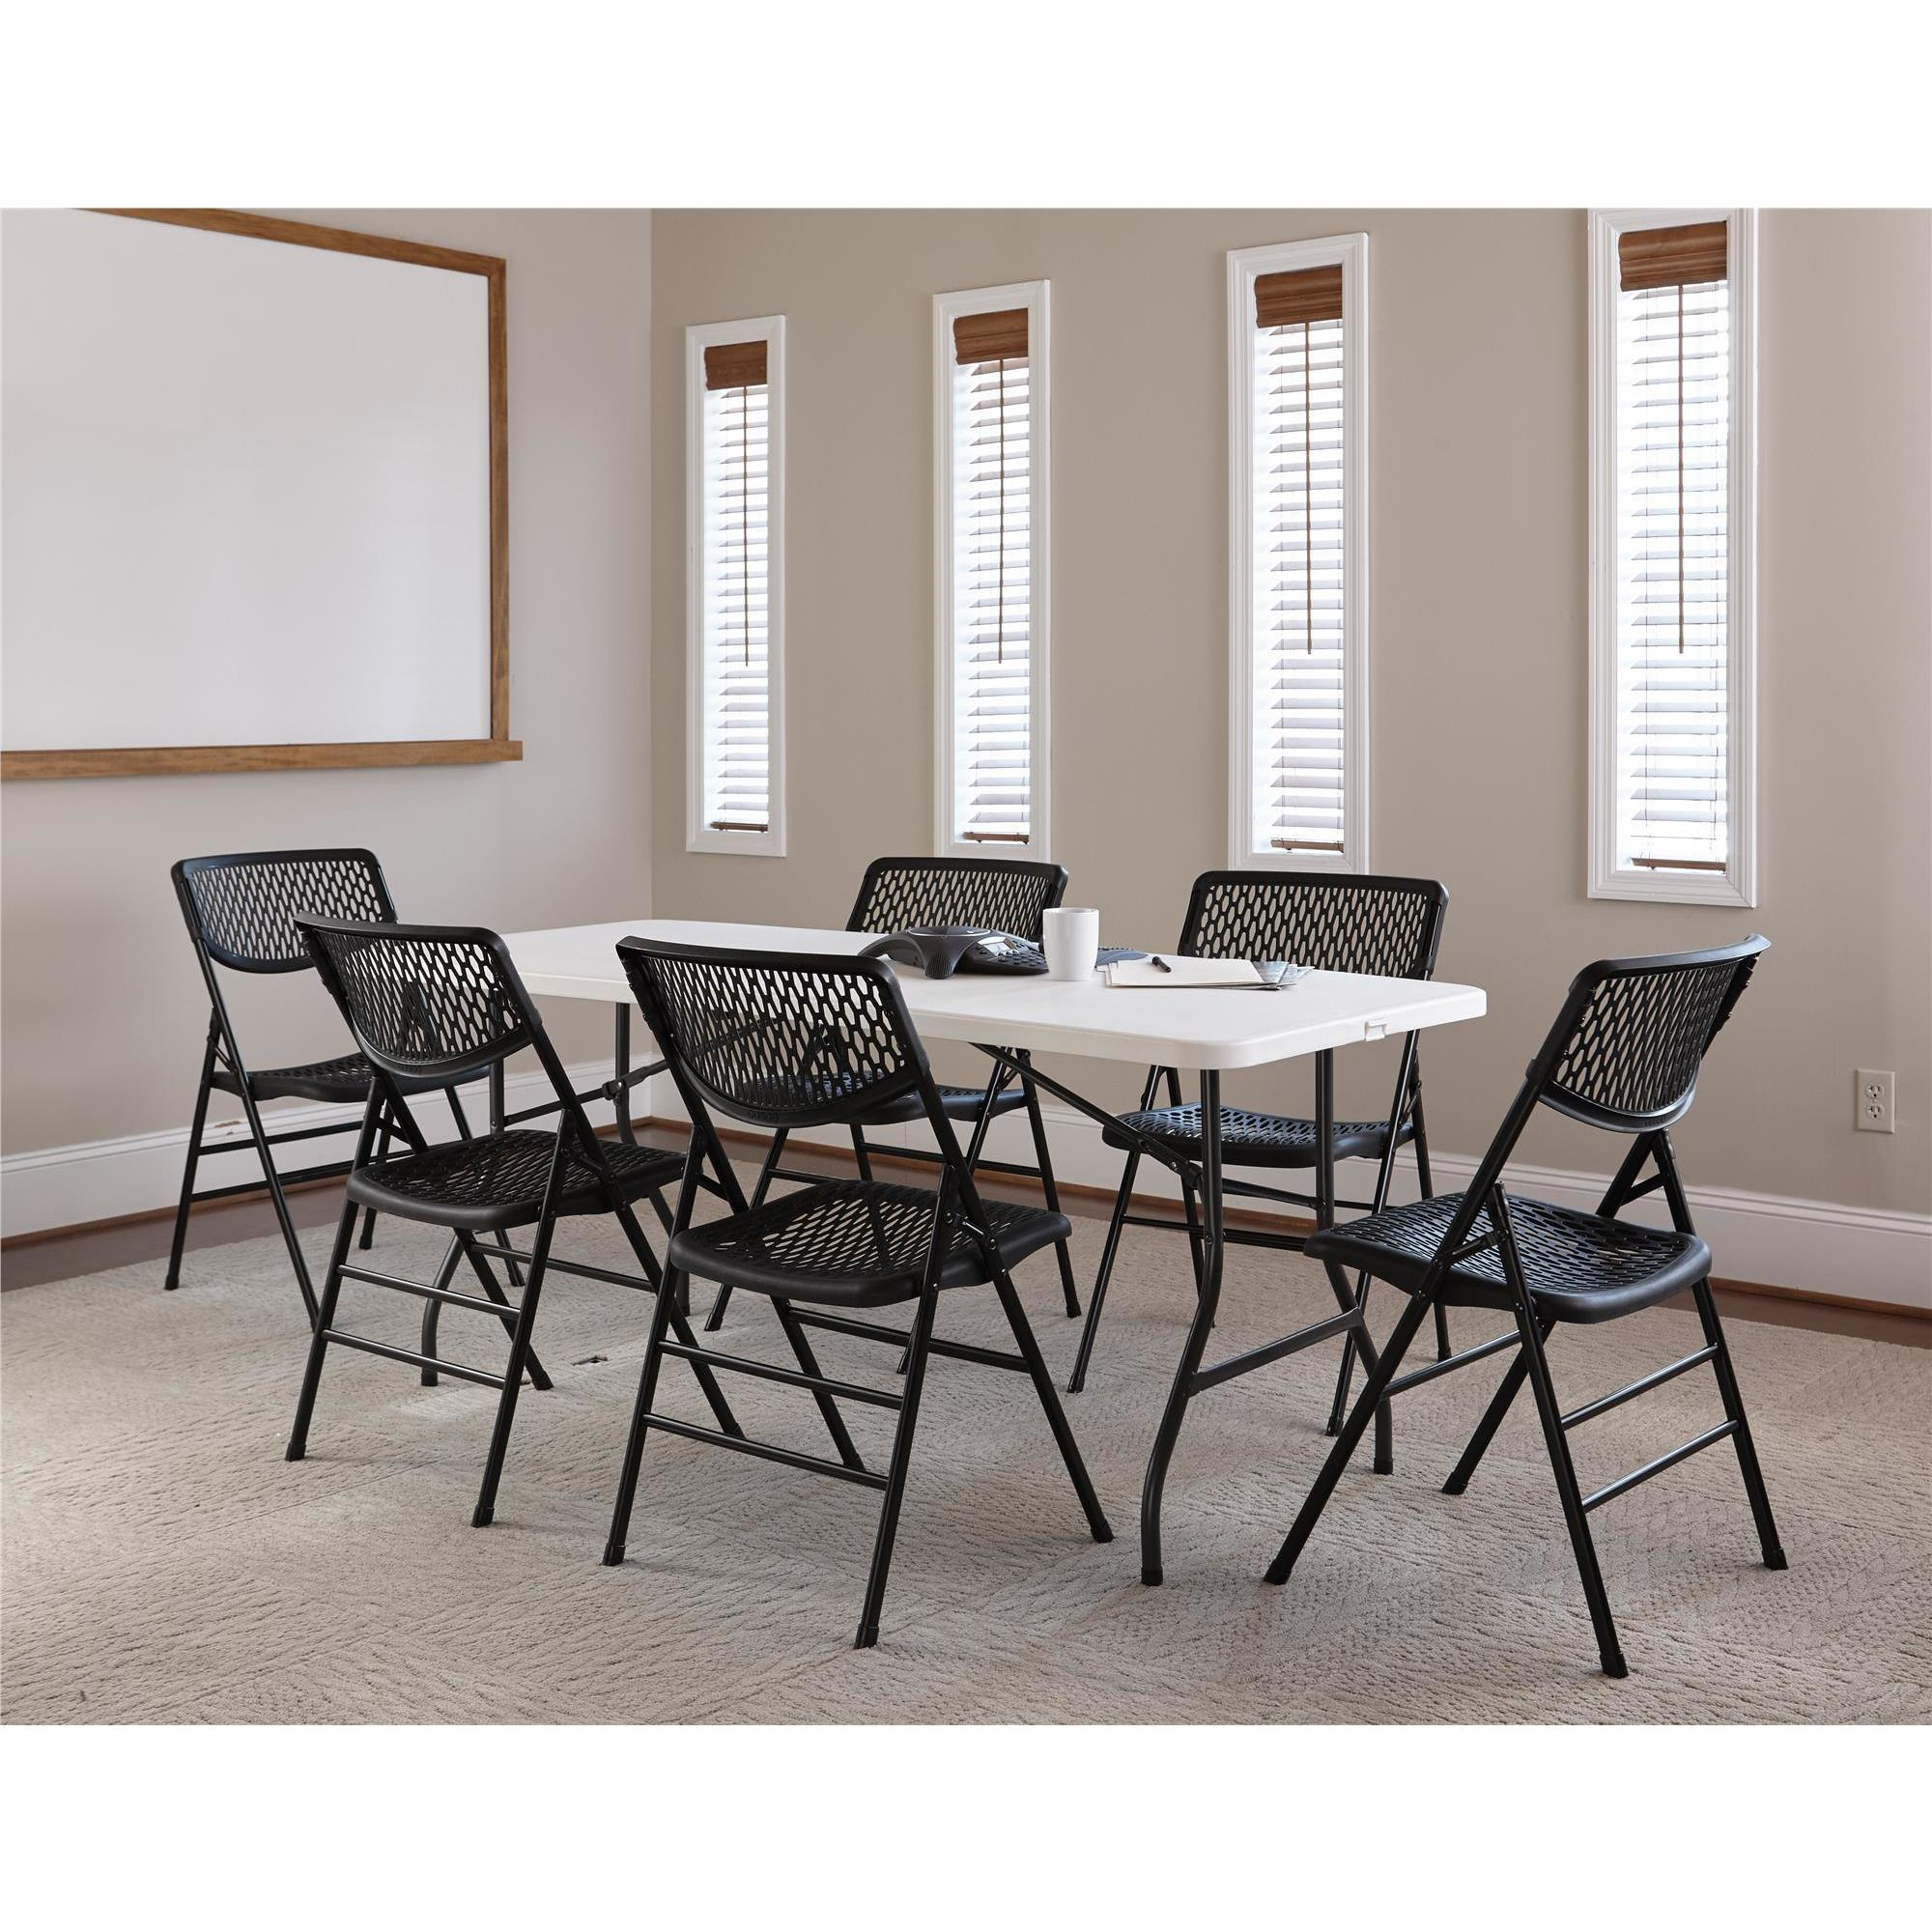 Shop COSCO Commercial Resin Mesh Folding Chair (Set of 4) - Free Shipping Today - Overstock.com - 16740429  sc 1 st  Overstock & Shop COSCO Commercial Resin Mesh Folding Chair (Set of 4) - Free ...